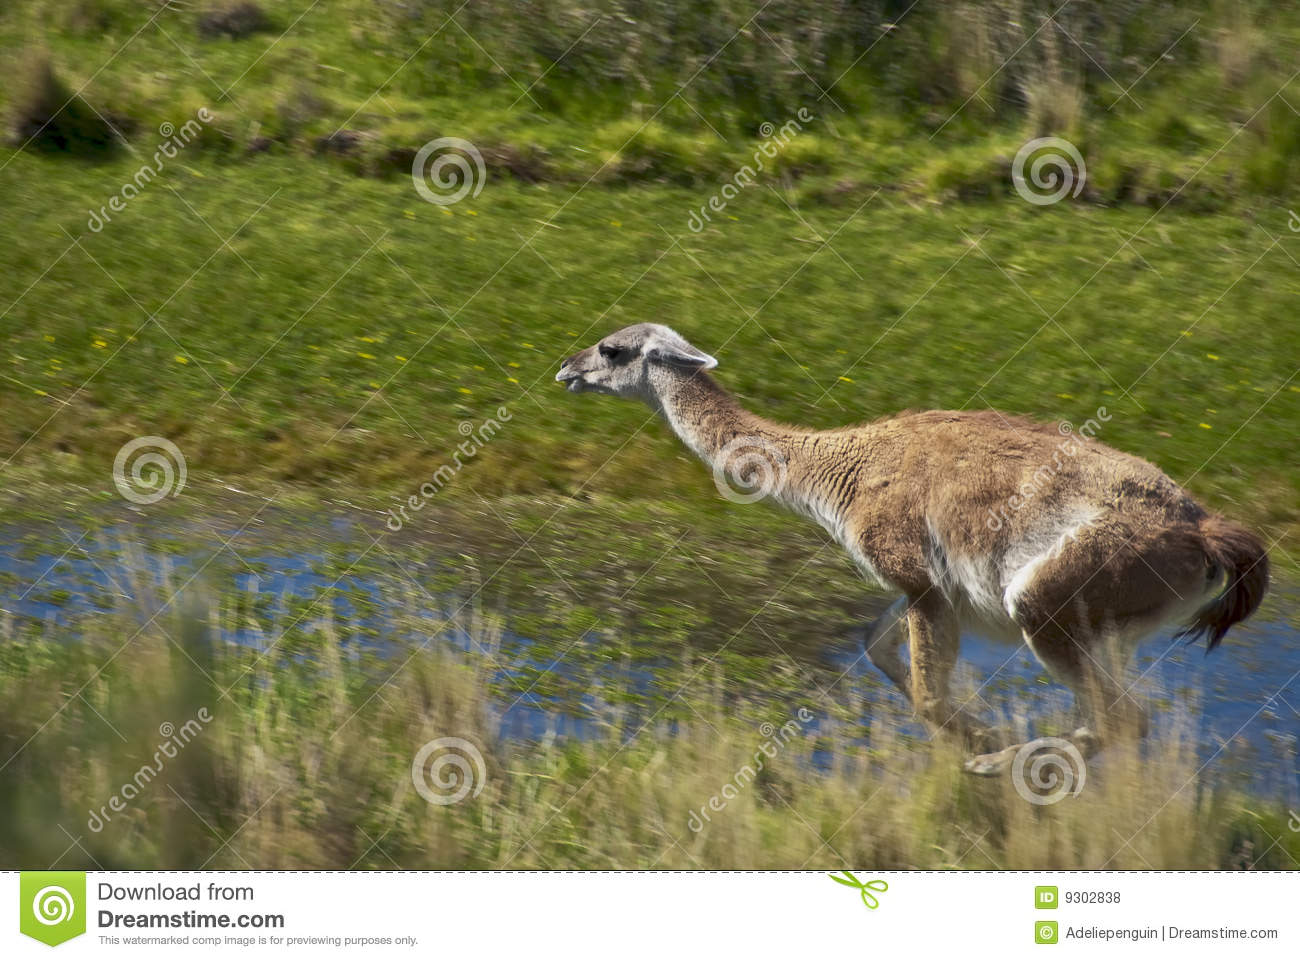 Guanaco, Patagonia Wildlife, Chile Royalty Free Stock Photos - Image ...